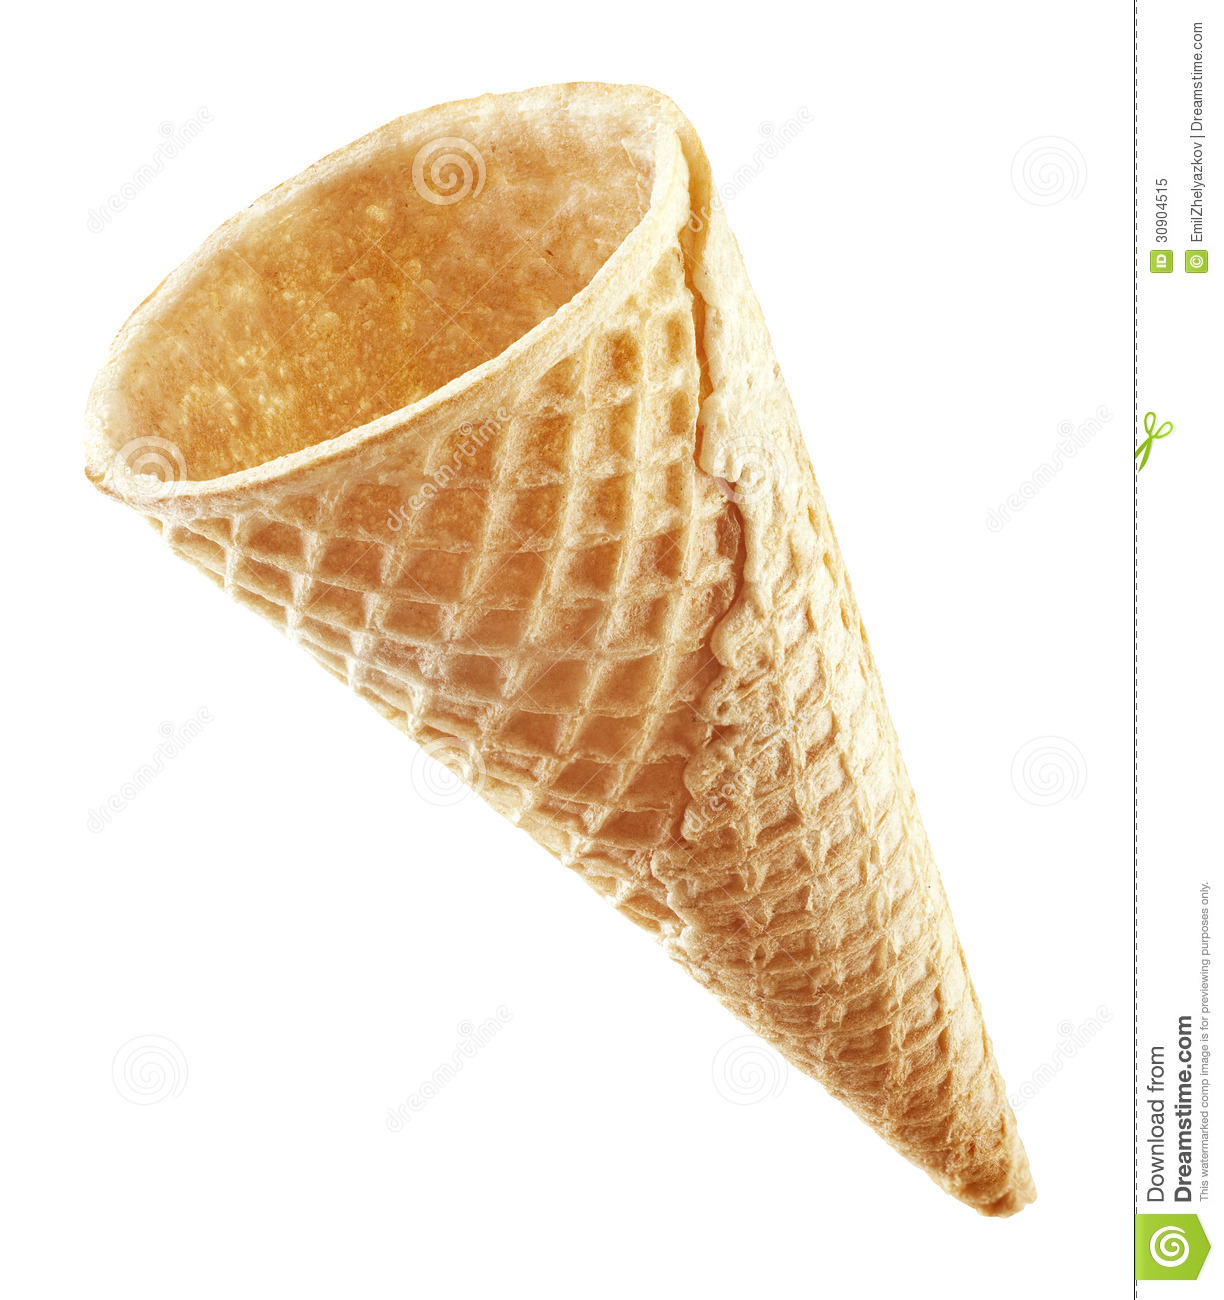 Cone In Real Life: Wafer Cone Stock Image. Image Of Crunchy, Food, Waffle